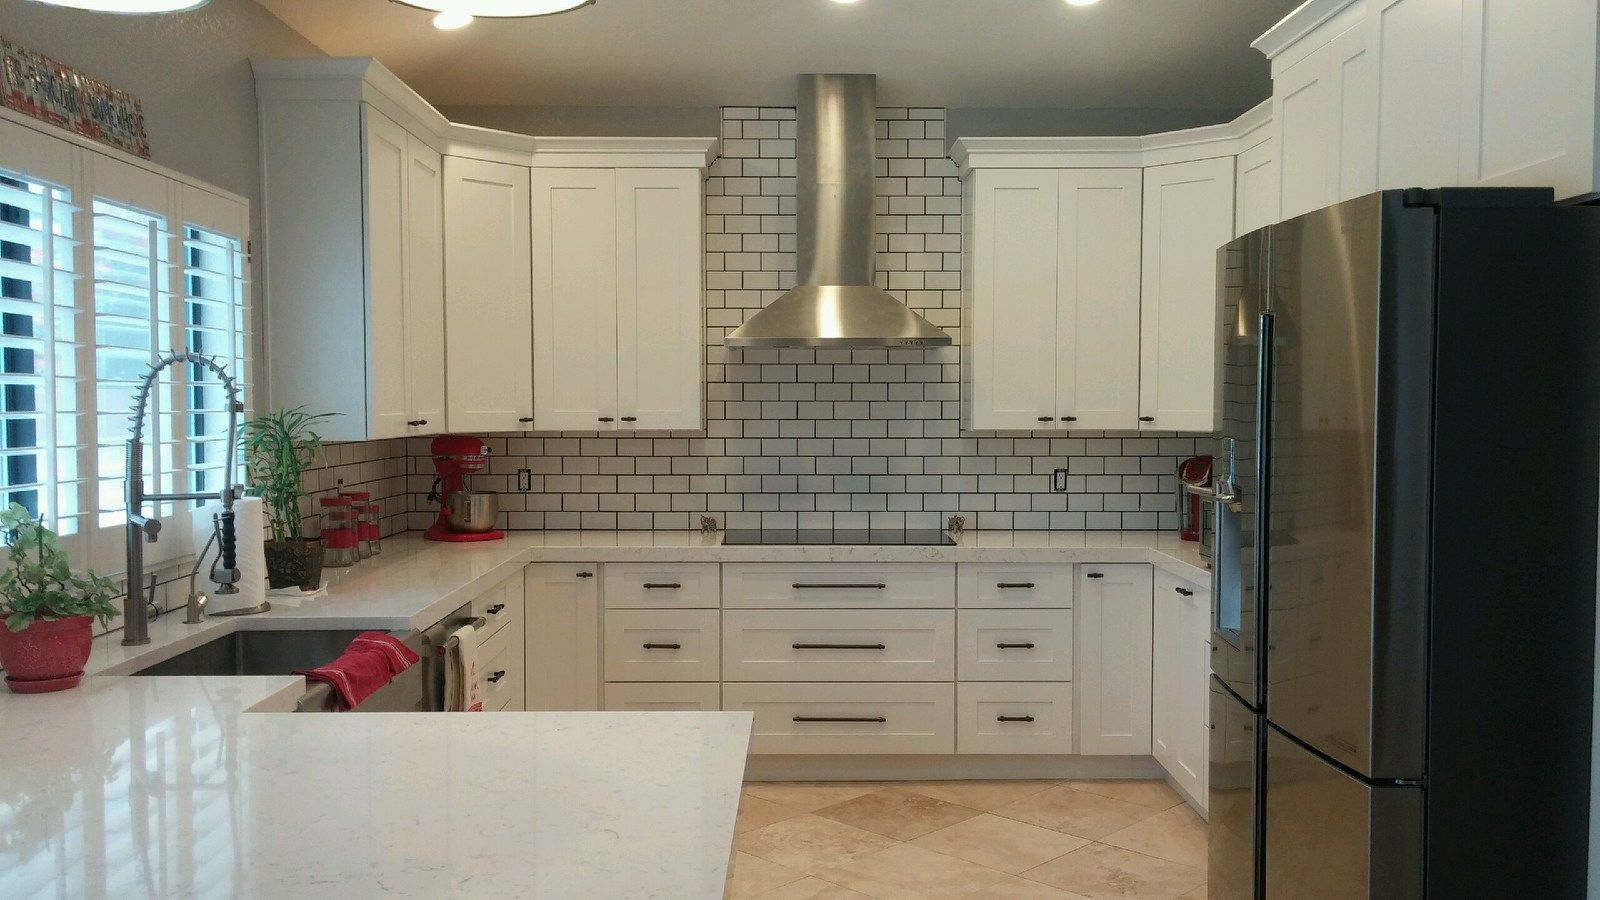 Kitchen Cabinets Showrooms http://kitchen.cabinetandstone/sollid-cabinetry-remodeling